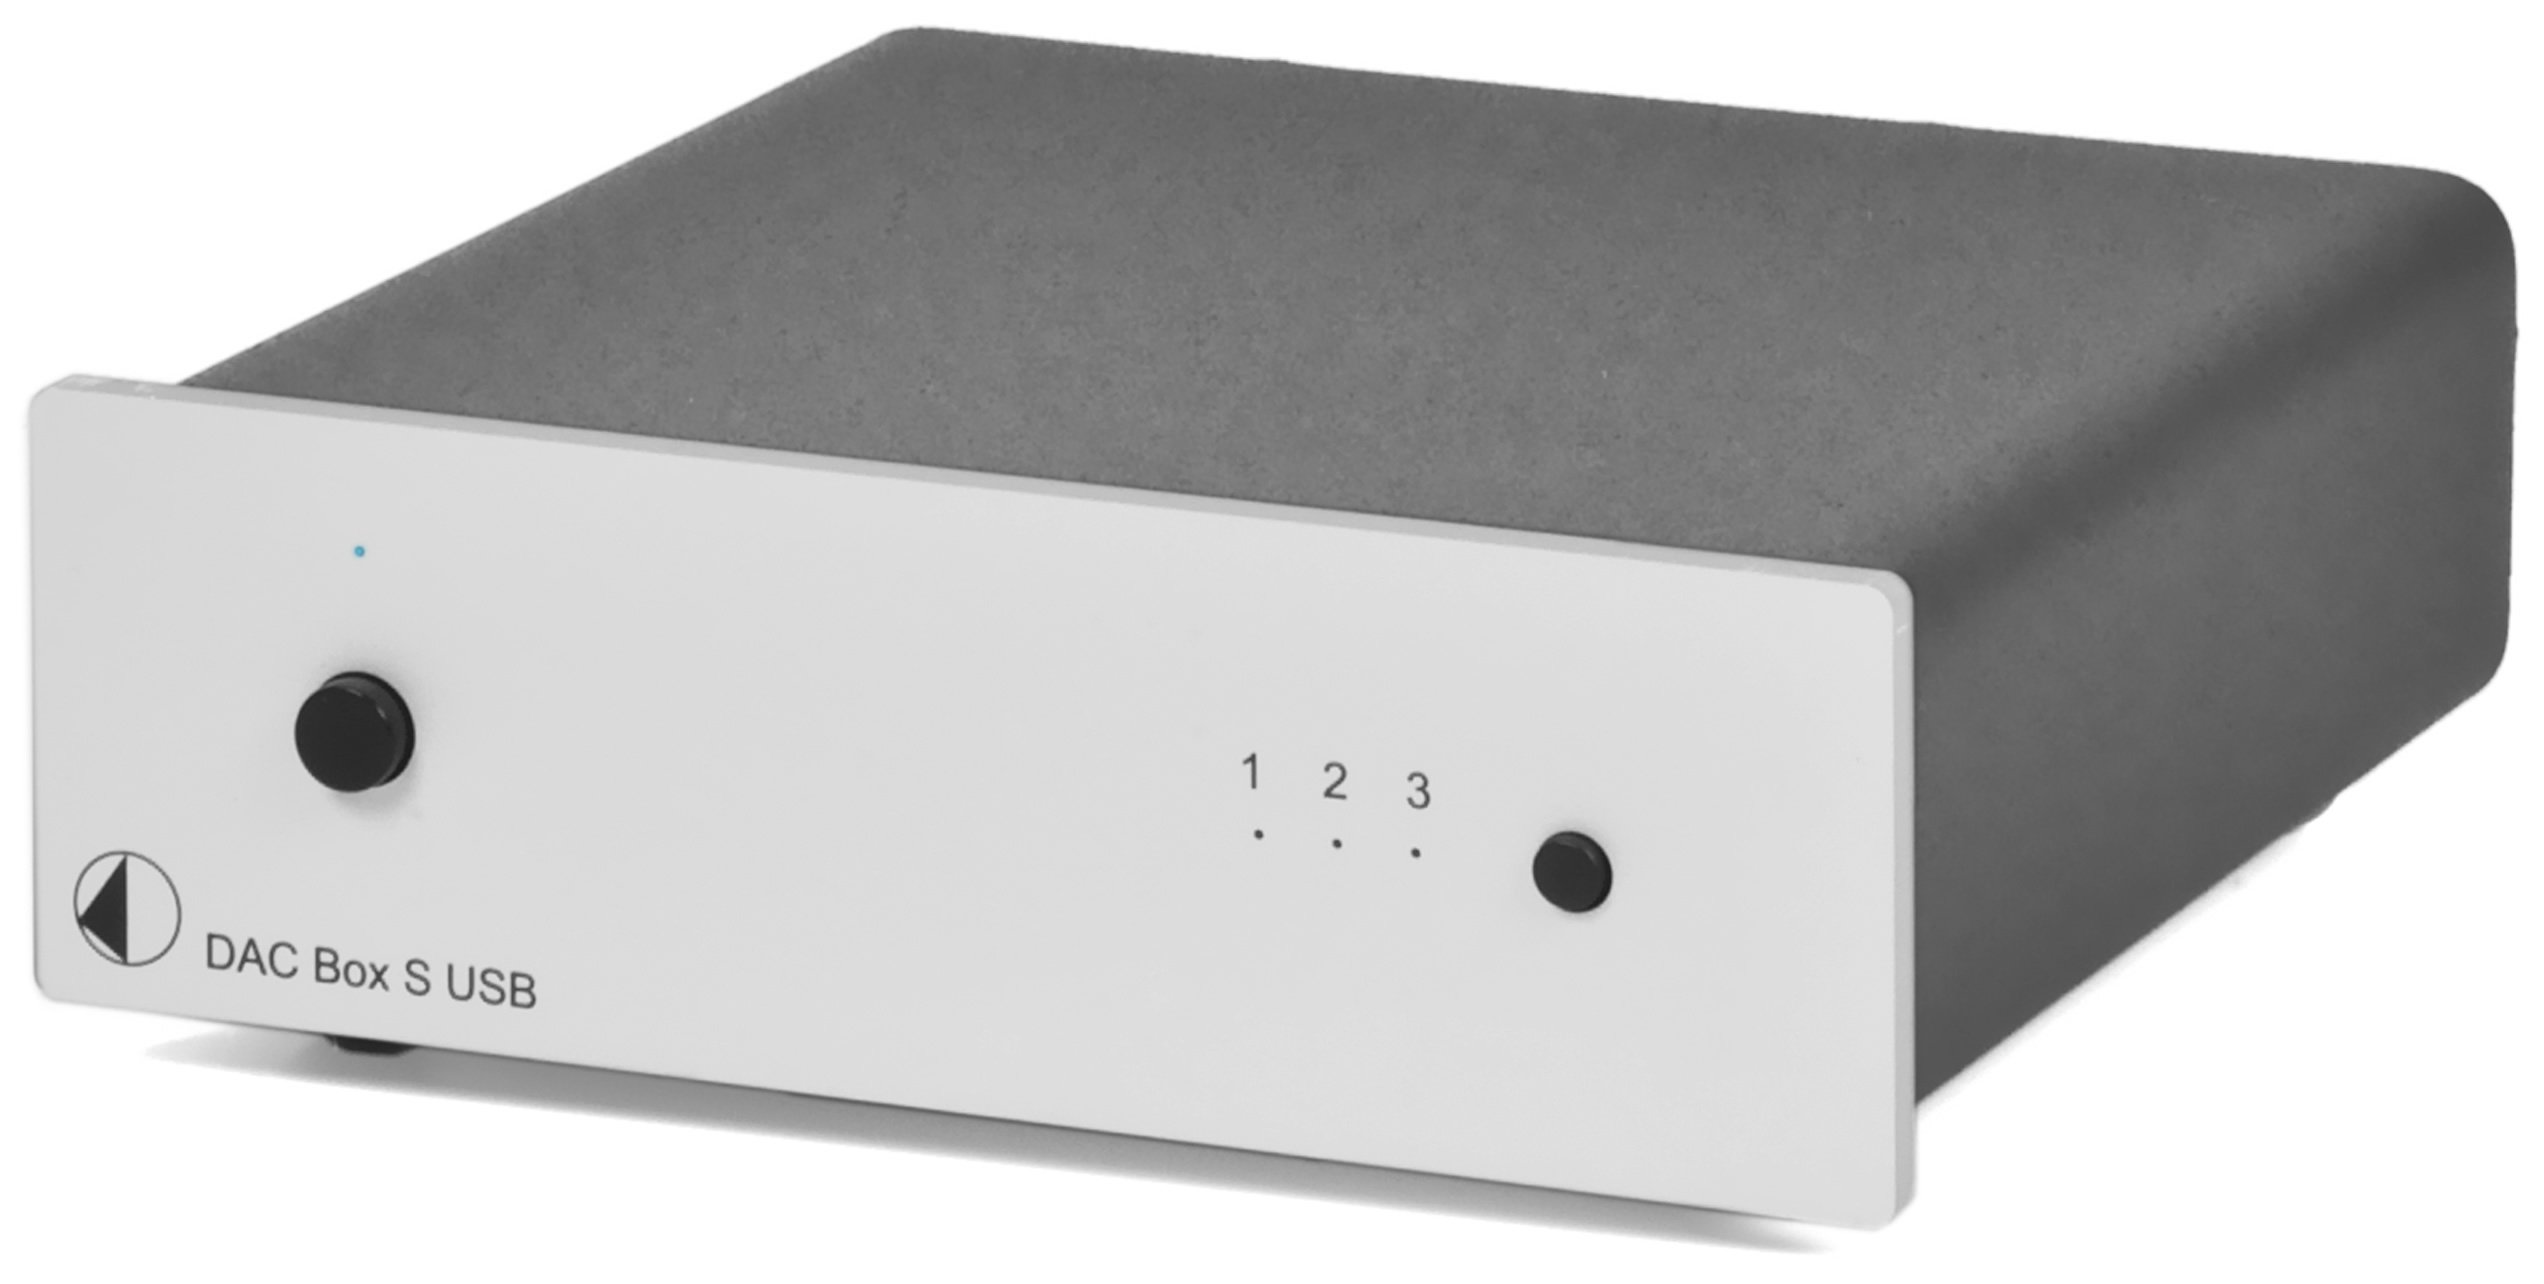 Pro-Ject DAC Box S USB (silver) Digital To Analog Converter, Silver